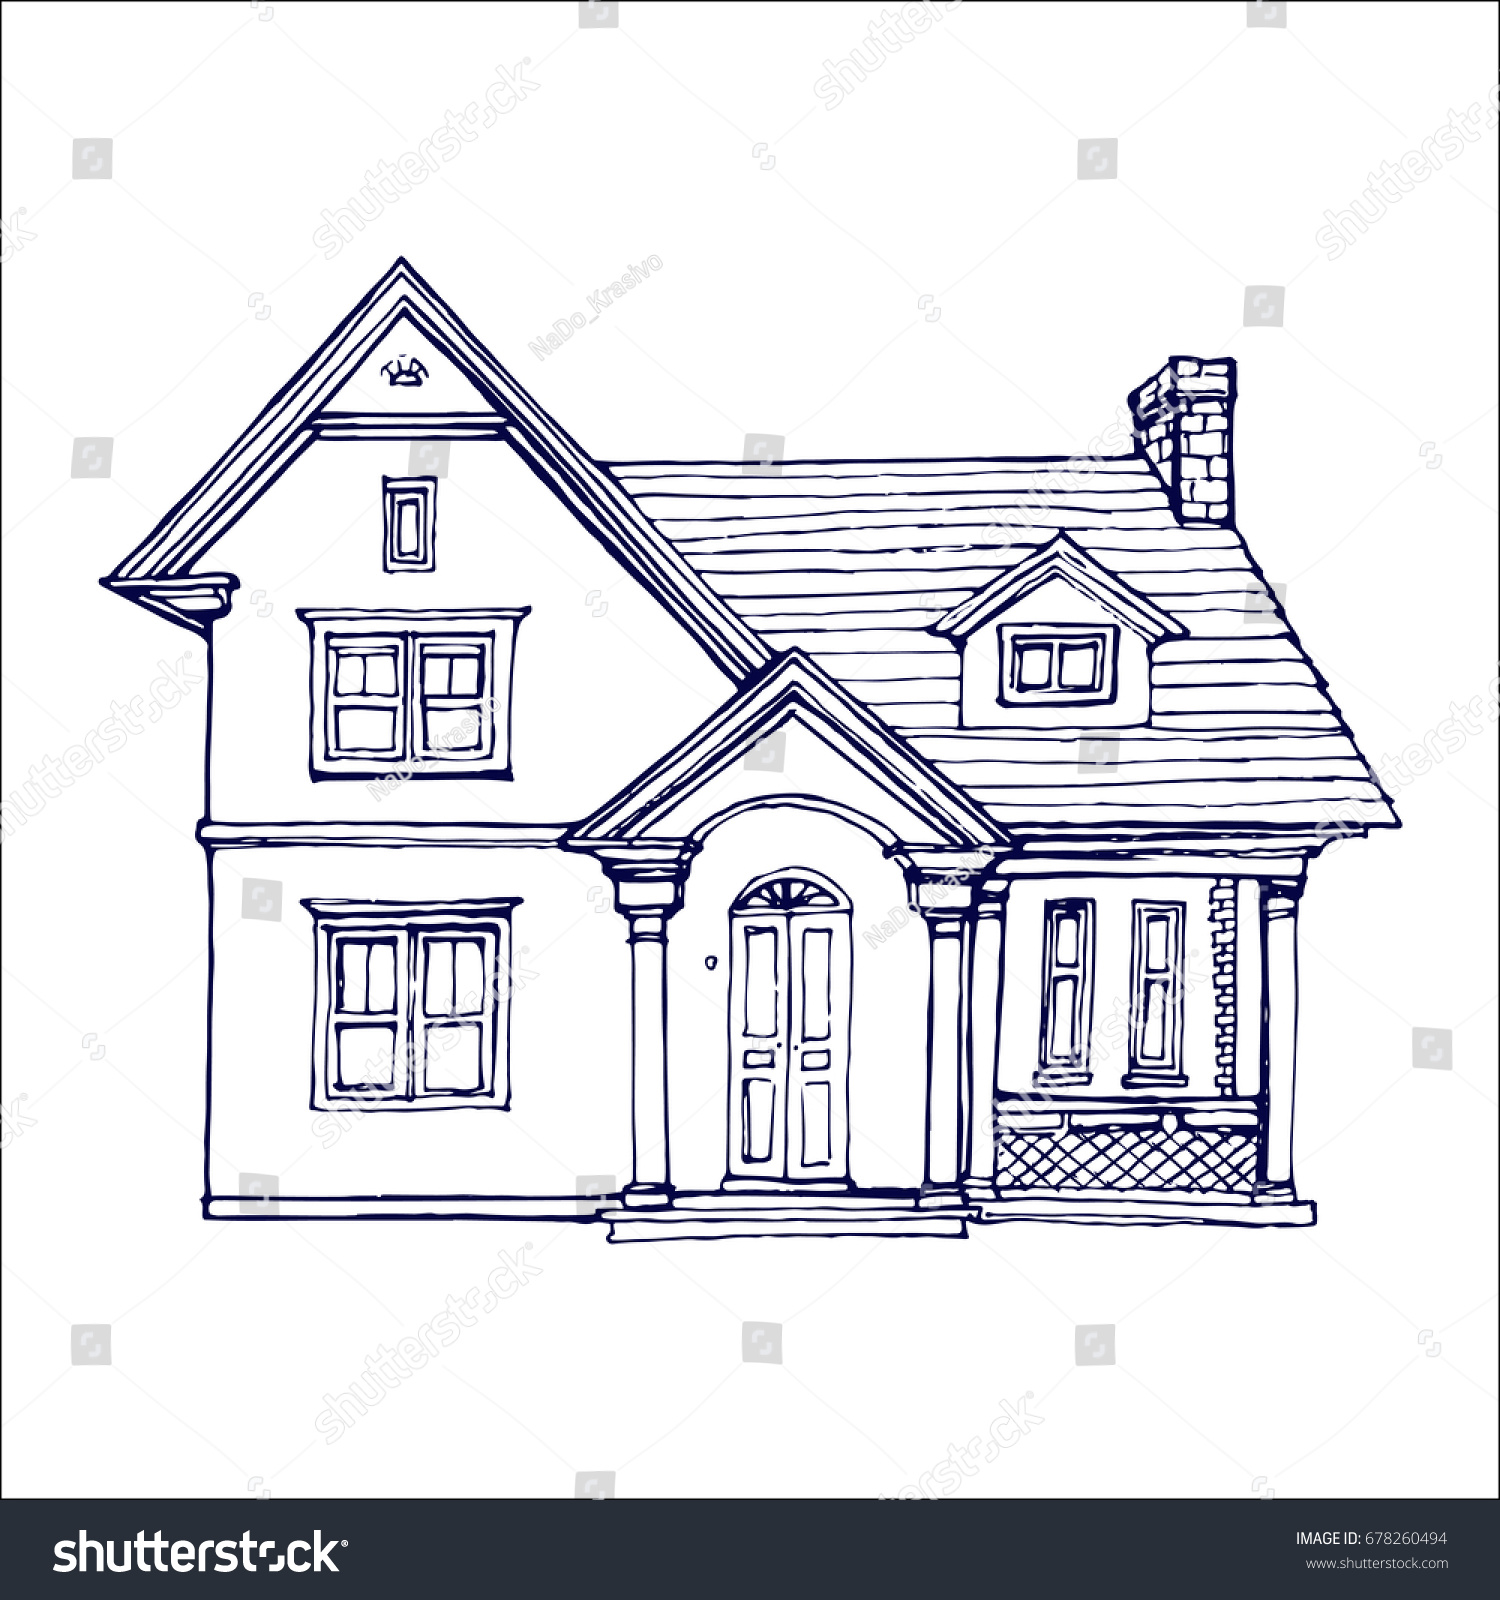 Little House Coloring Book | Coloring Pages